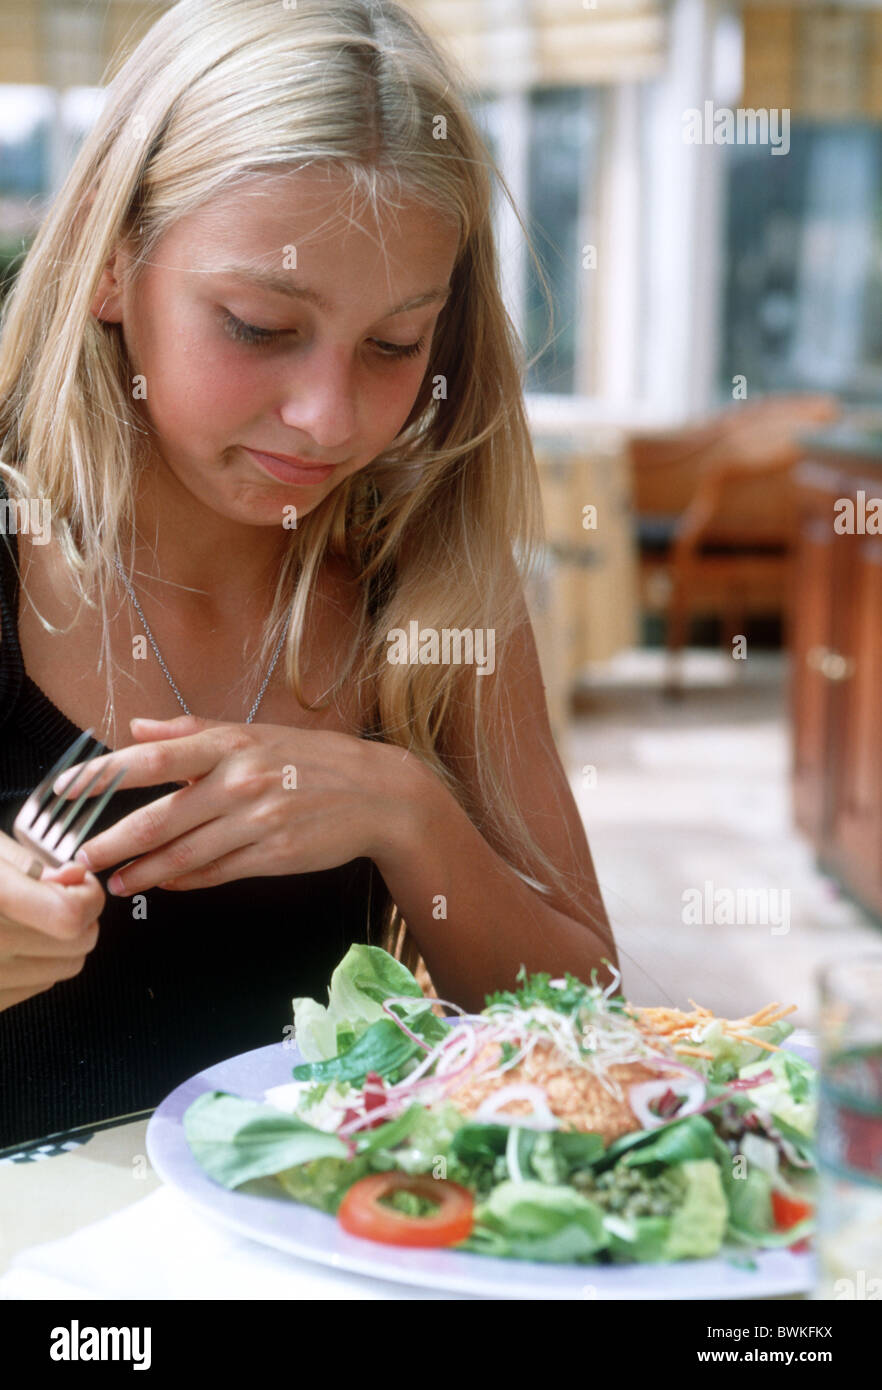 Preteen child turn down live food salad in restaurant - Stock Image